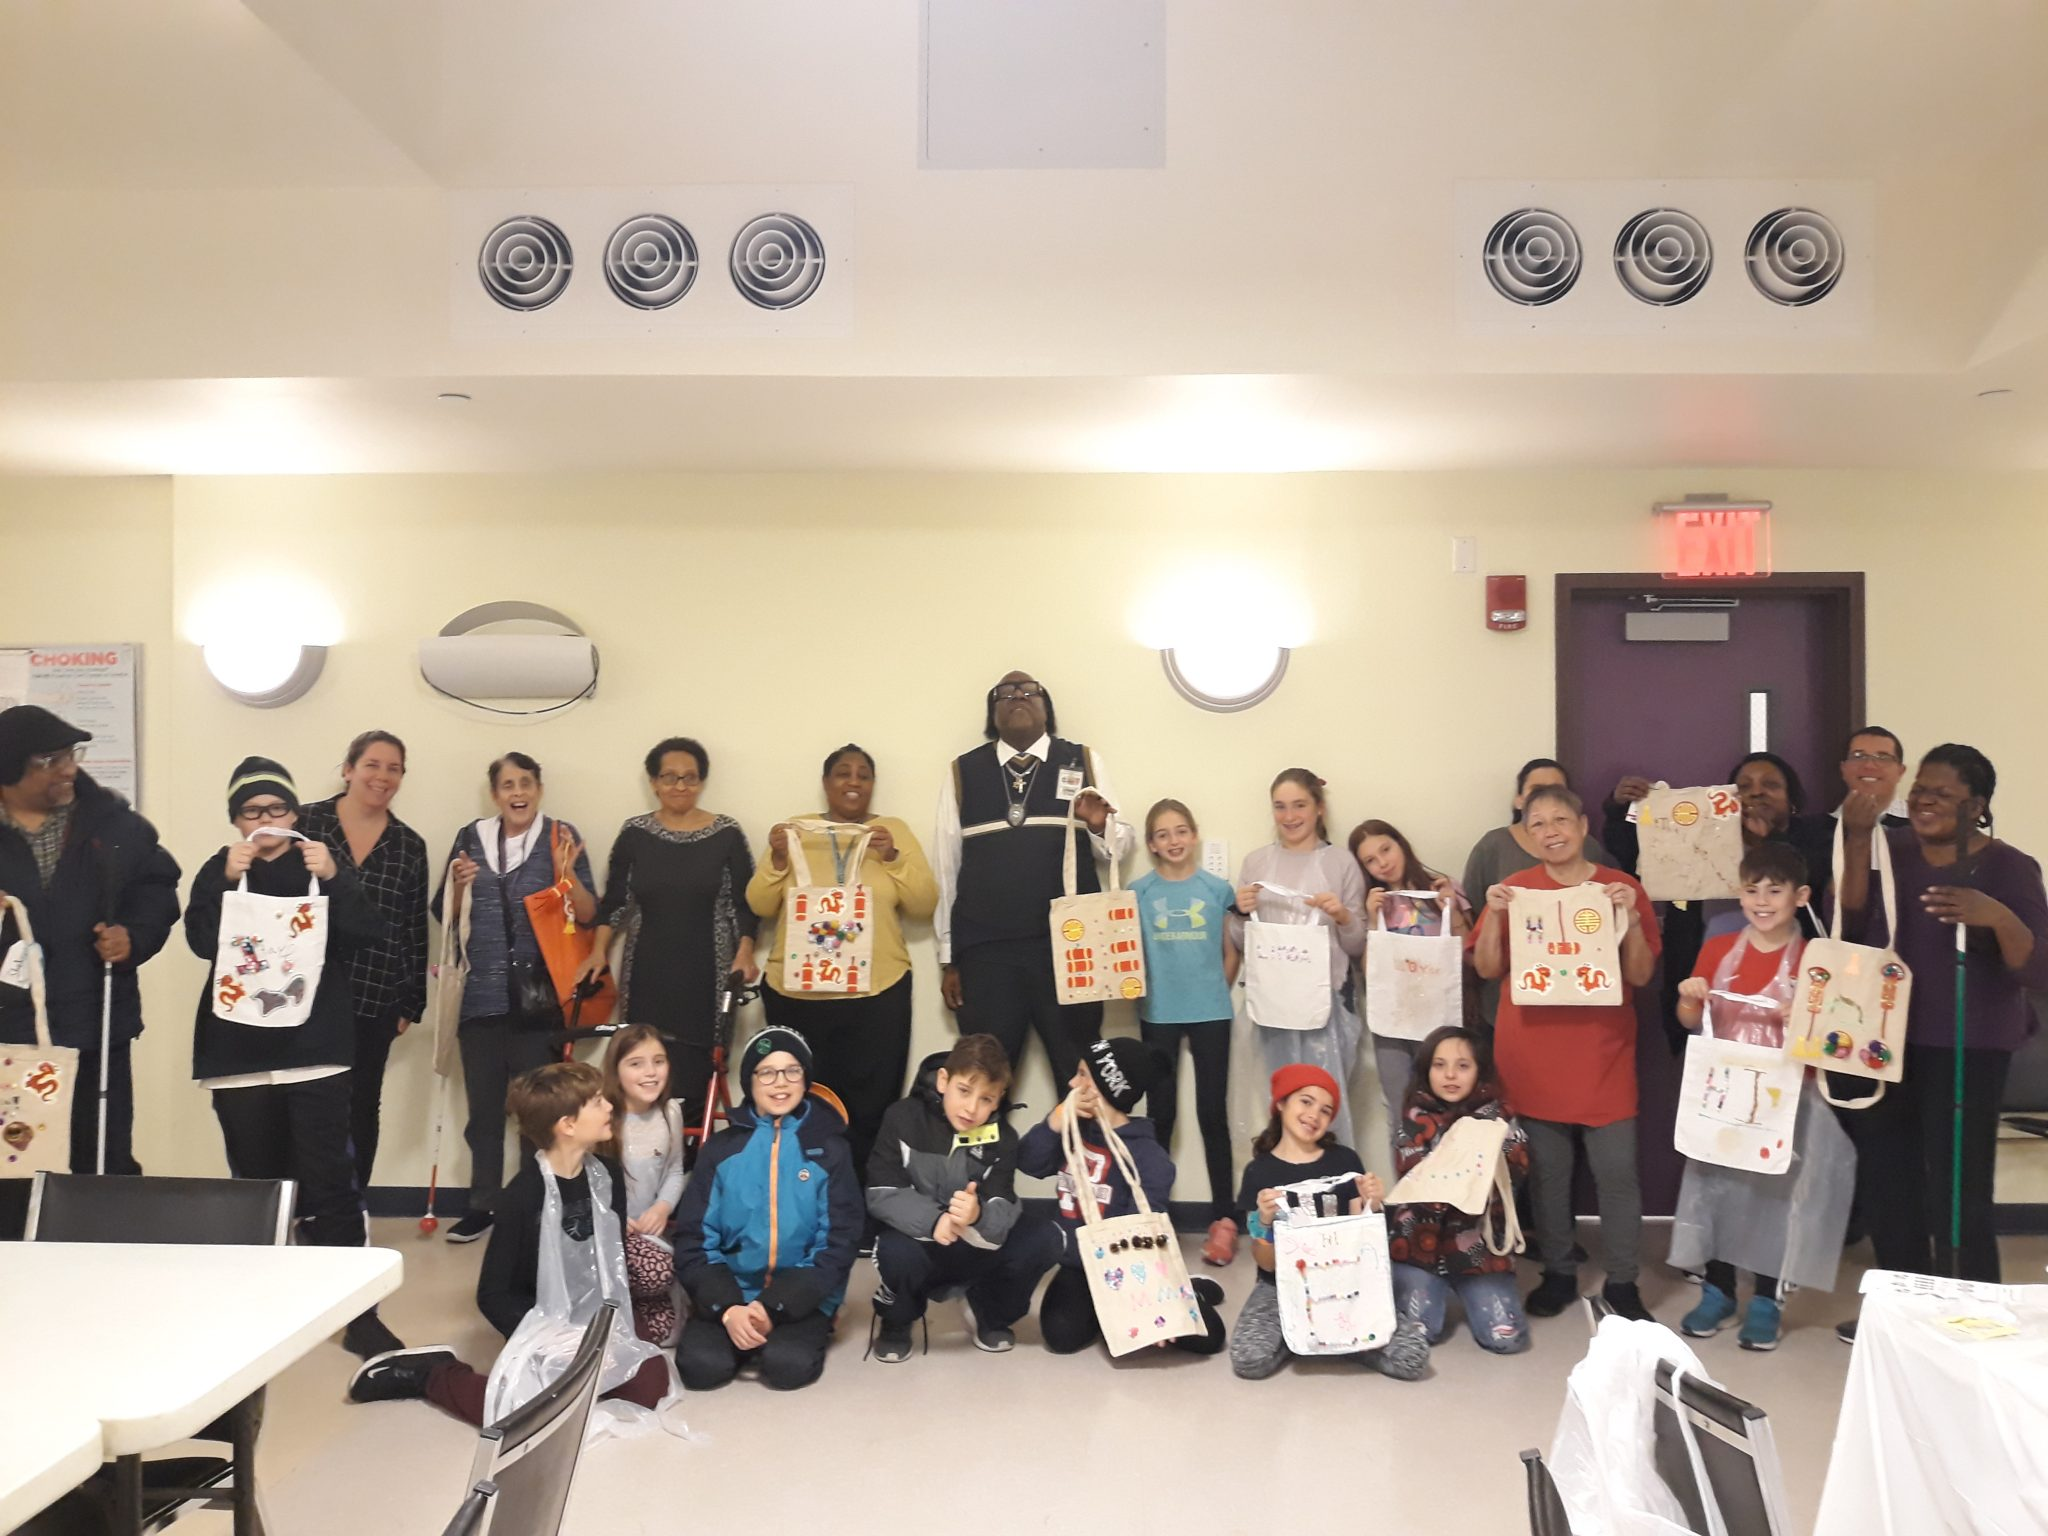 A large group of young children and VISIONS Center on Aging participants stand and pose for a group photo